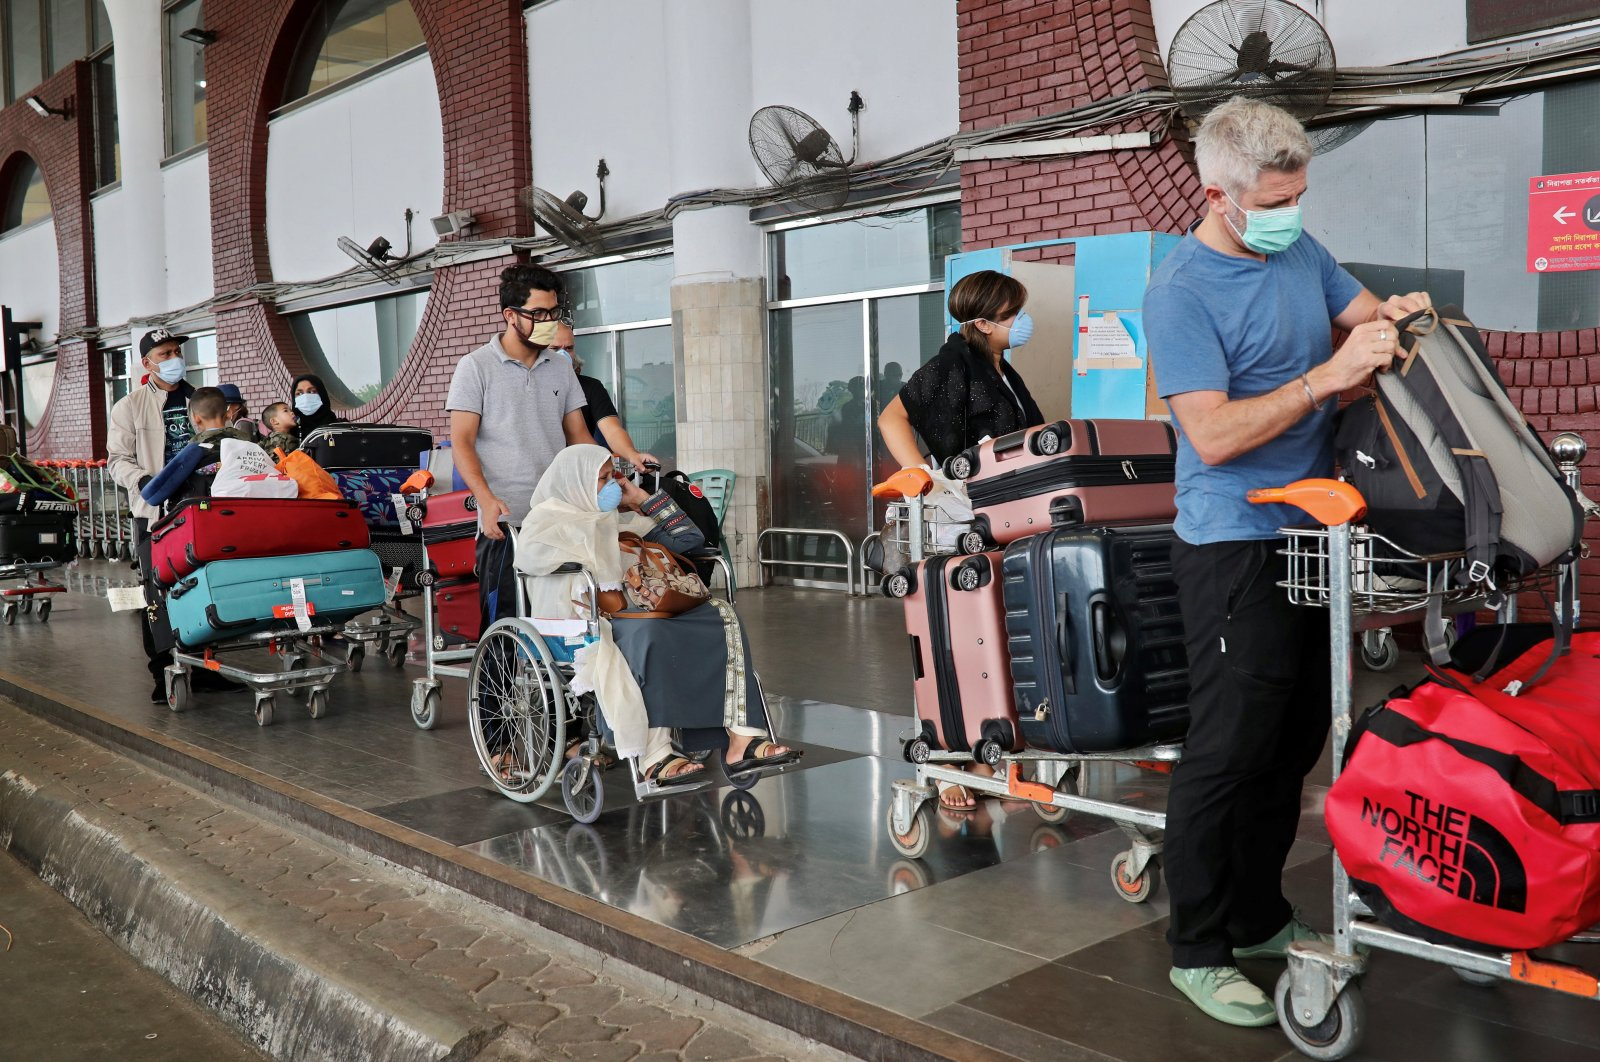 Citizens of UK arrive at the Hazrat Shahjalal International Airport to leave Bangladesh on a special flight amid the coronavirus outbreak in Dhaka, Bangladesh, April 21, 2020. (Reuters Photo)